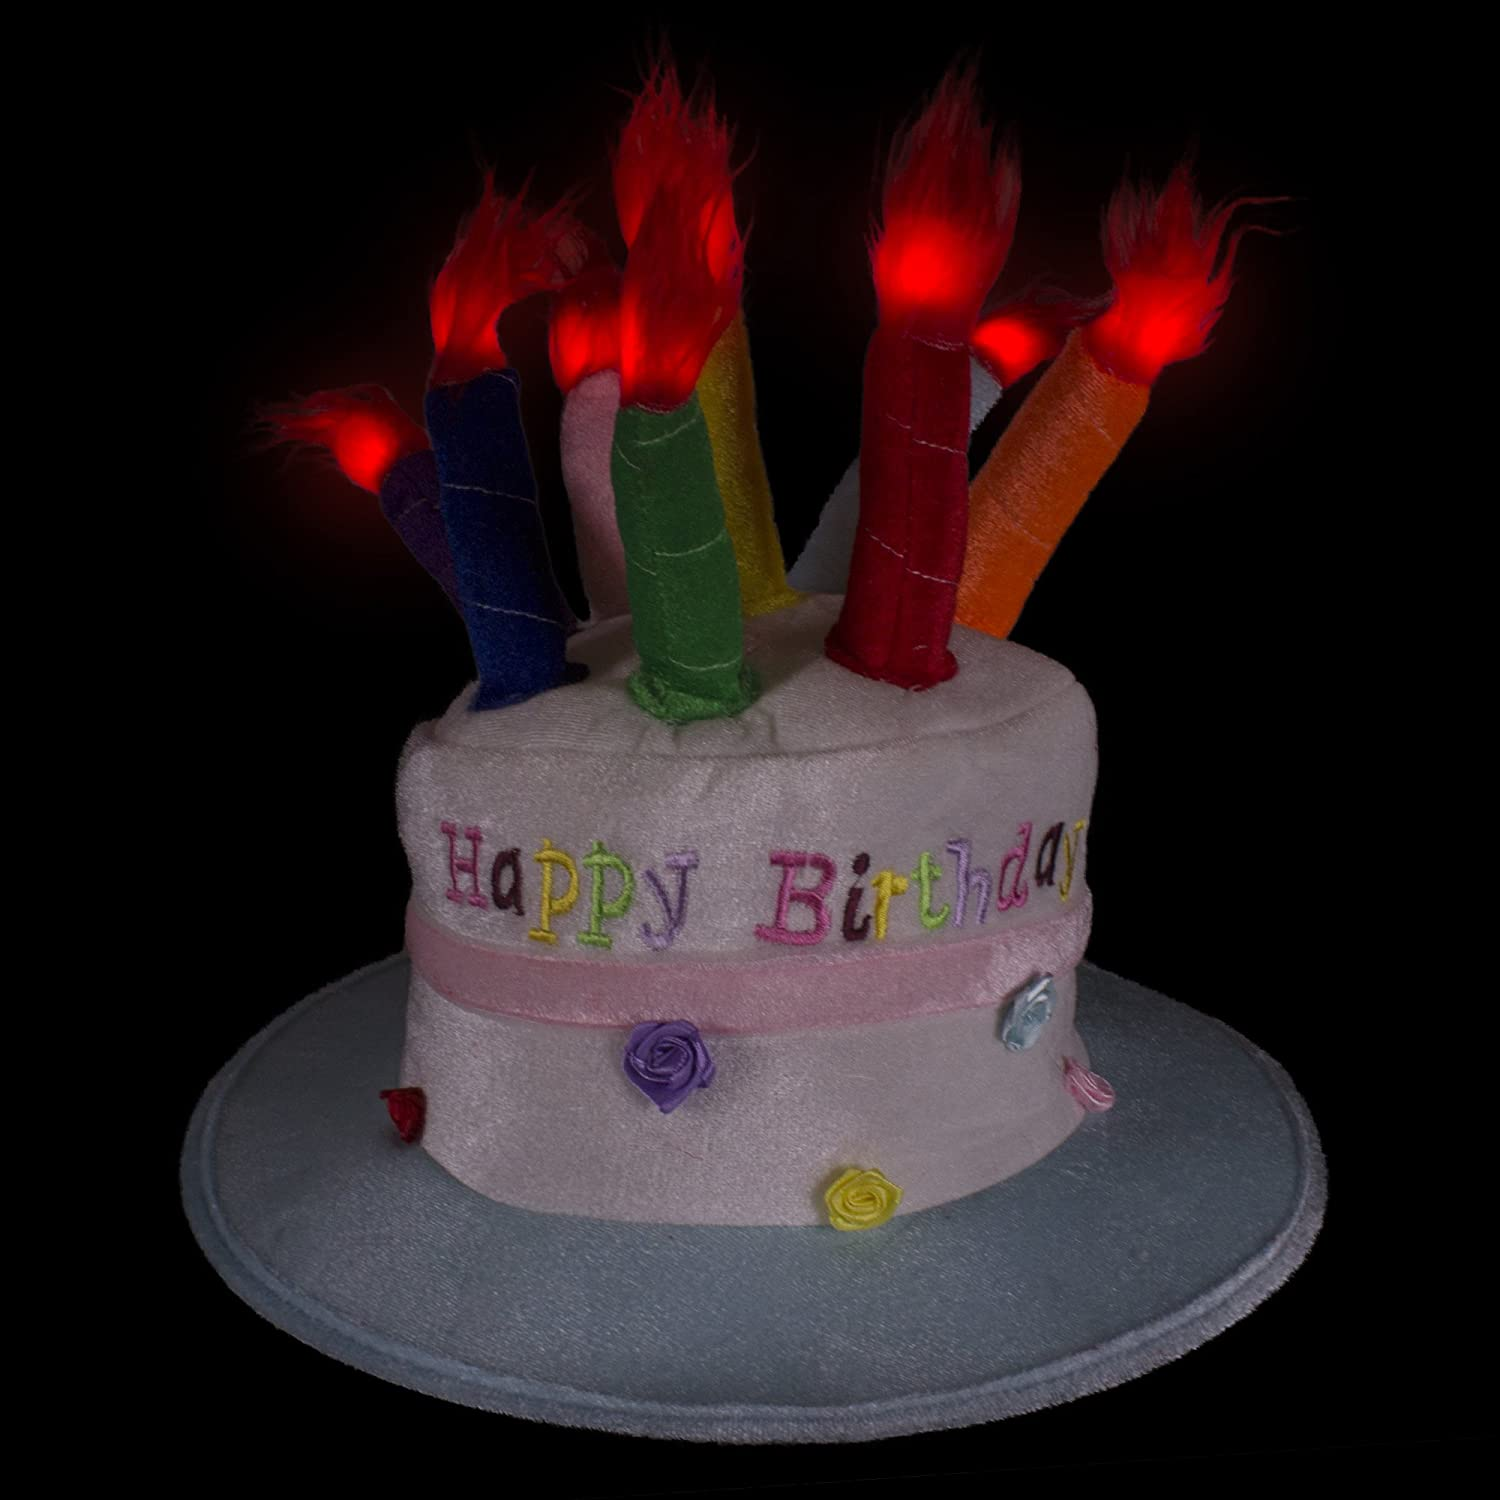 Led Happy Birthday Cake Hat With Light Up Candles For Kids Toys Games Jpg 1500x1500 Battery